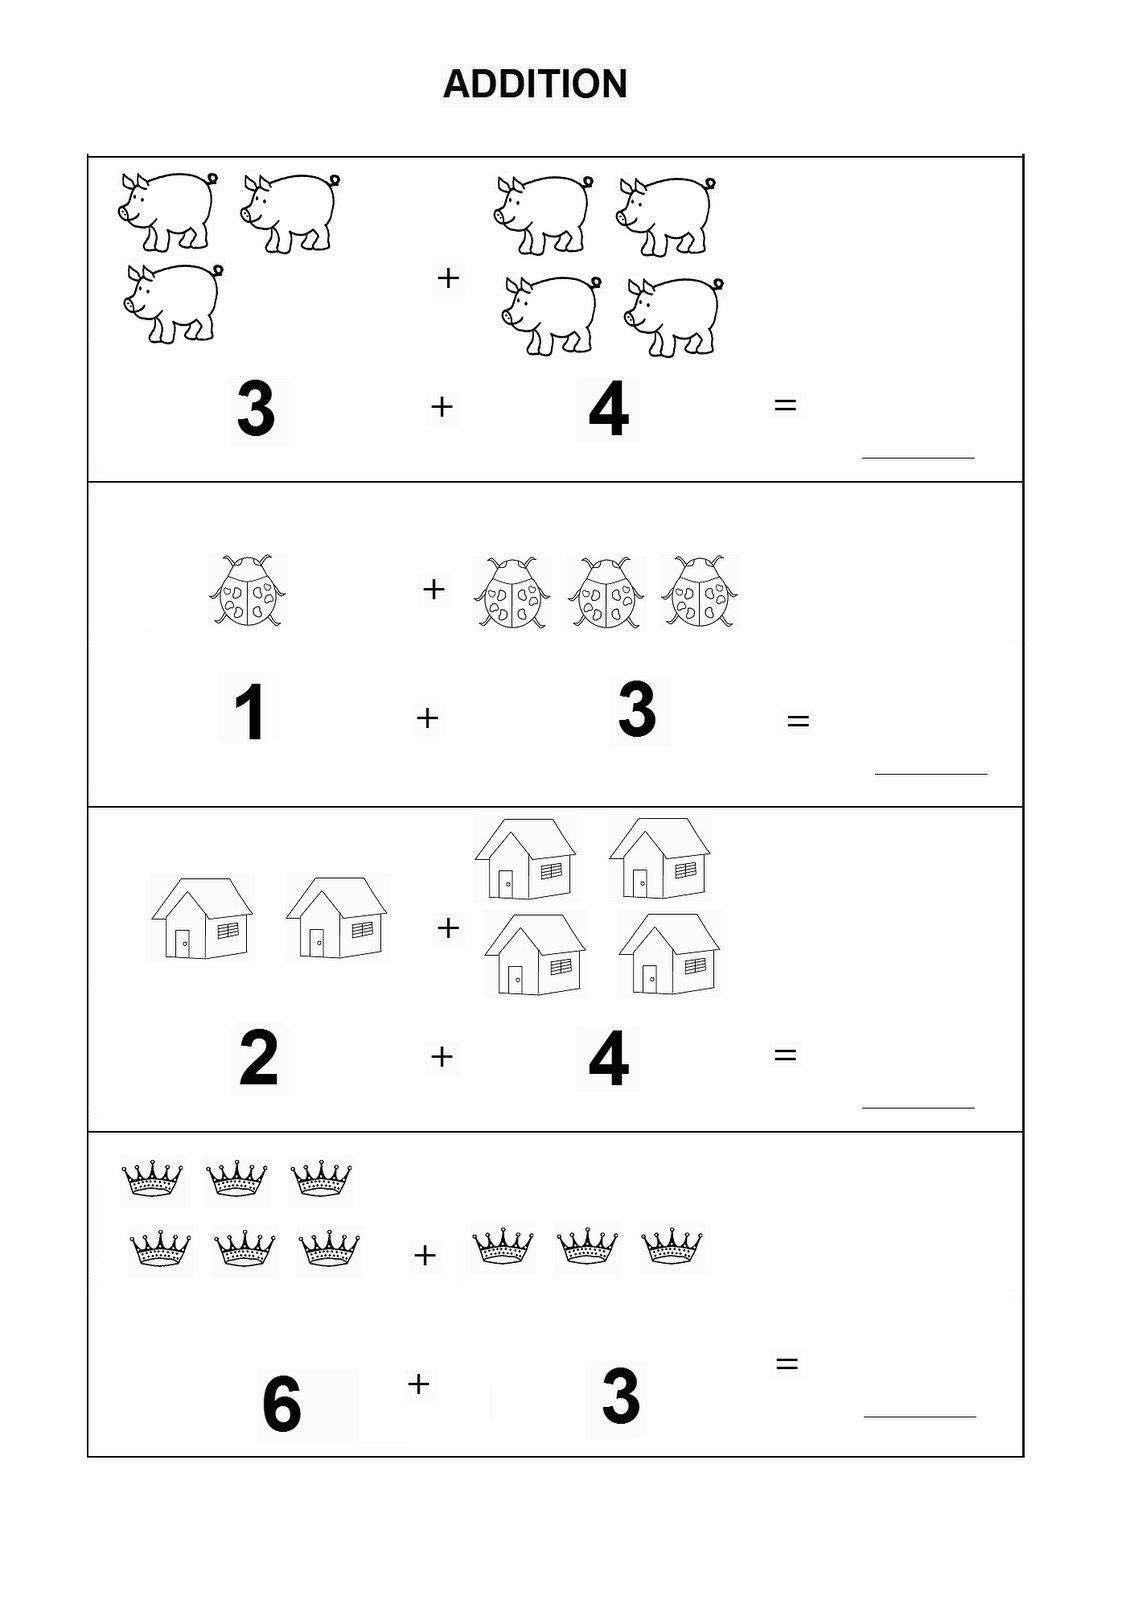 Kindergarten Math Worksheets Pdf Addition | Learning Printable ...